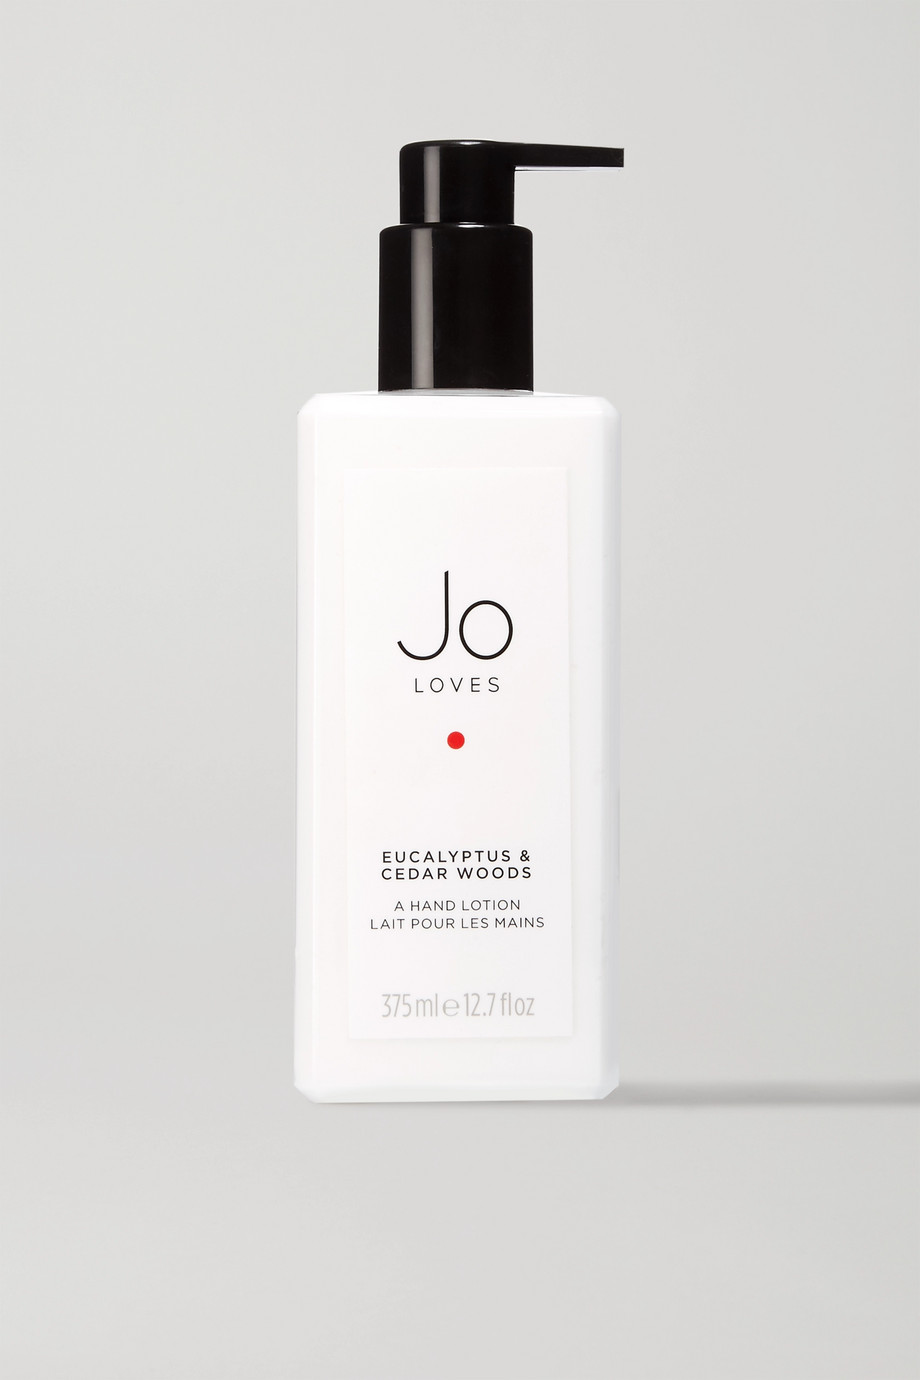 Jo Loves Eucalyptus & Cedar Woods Hand Lotion, 375ml